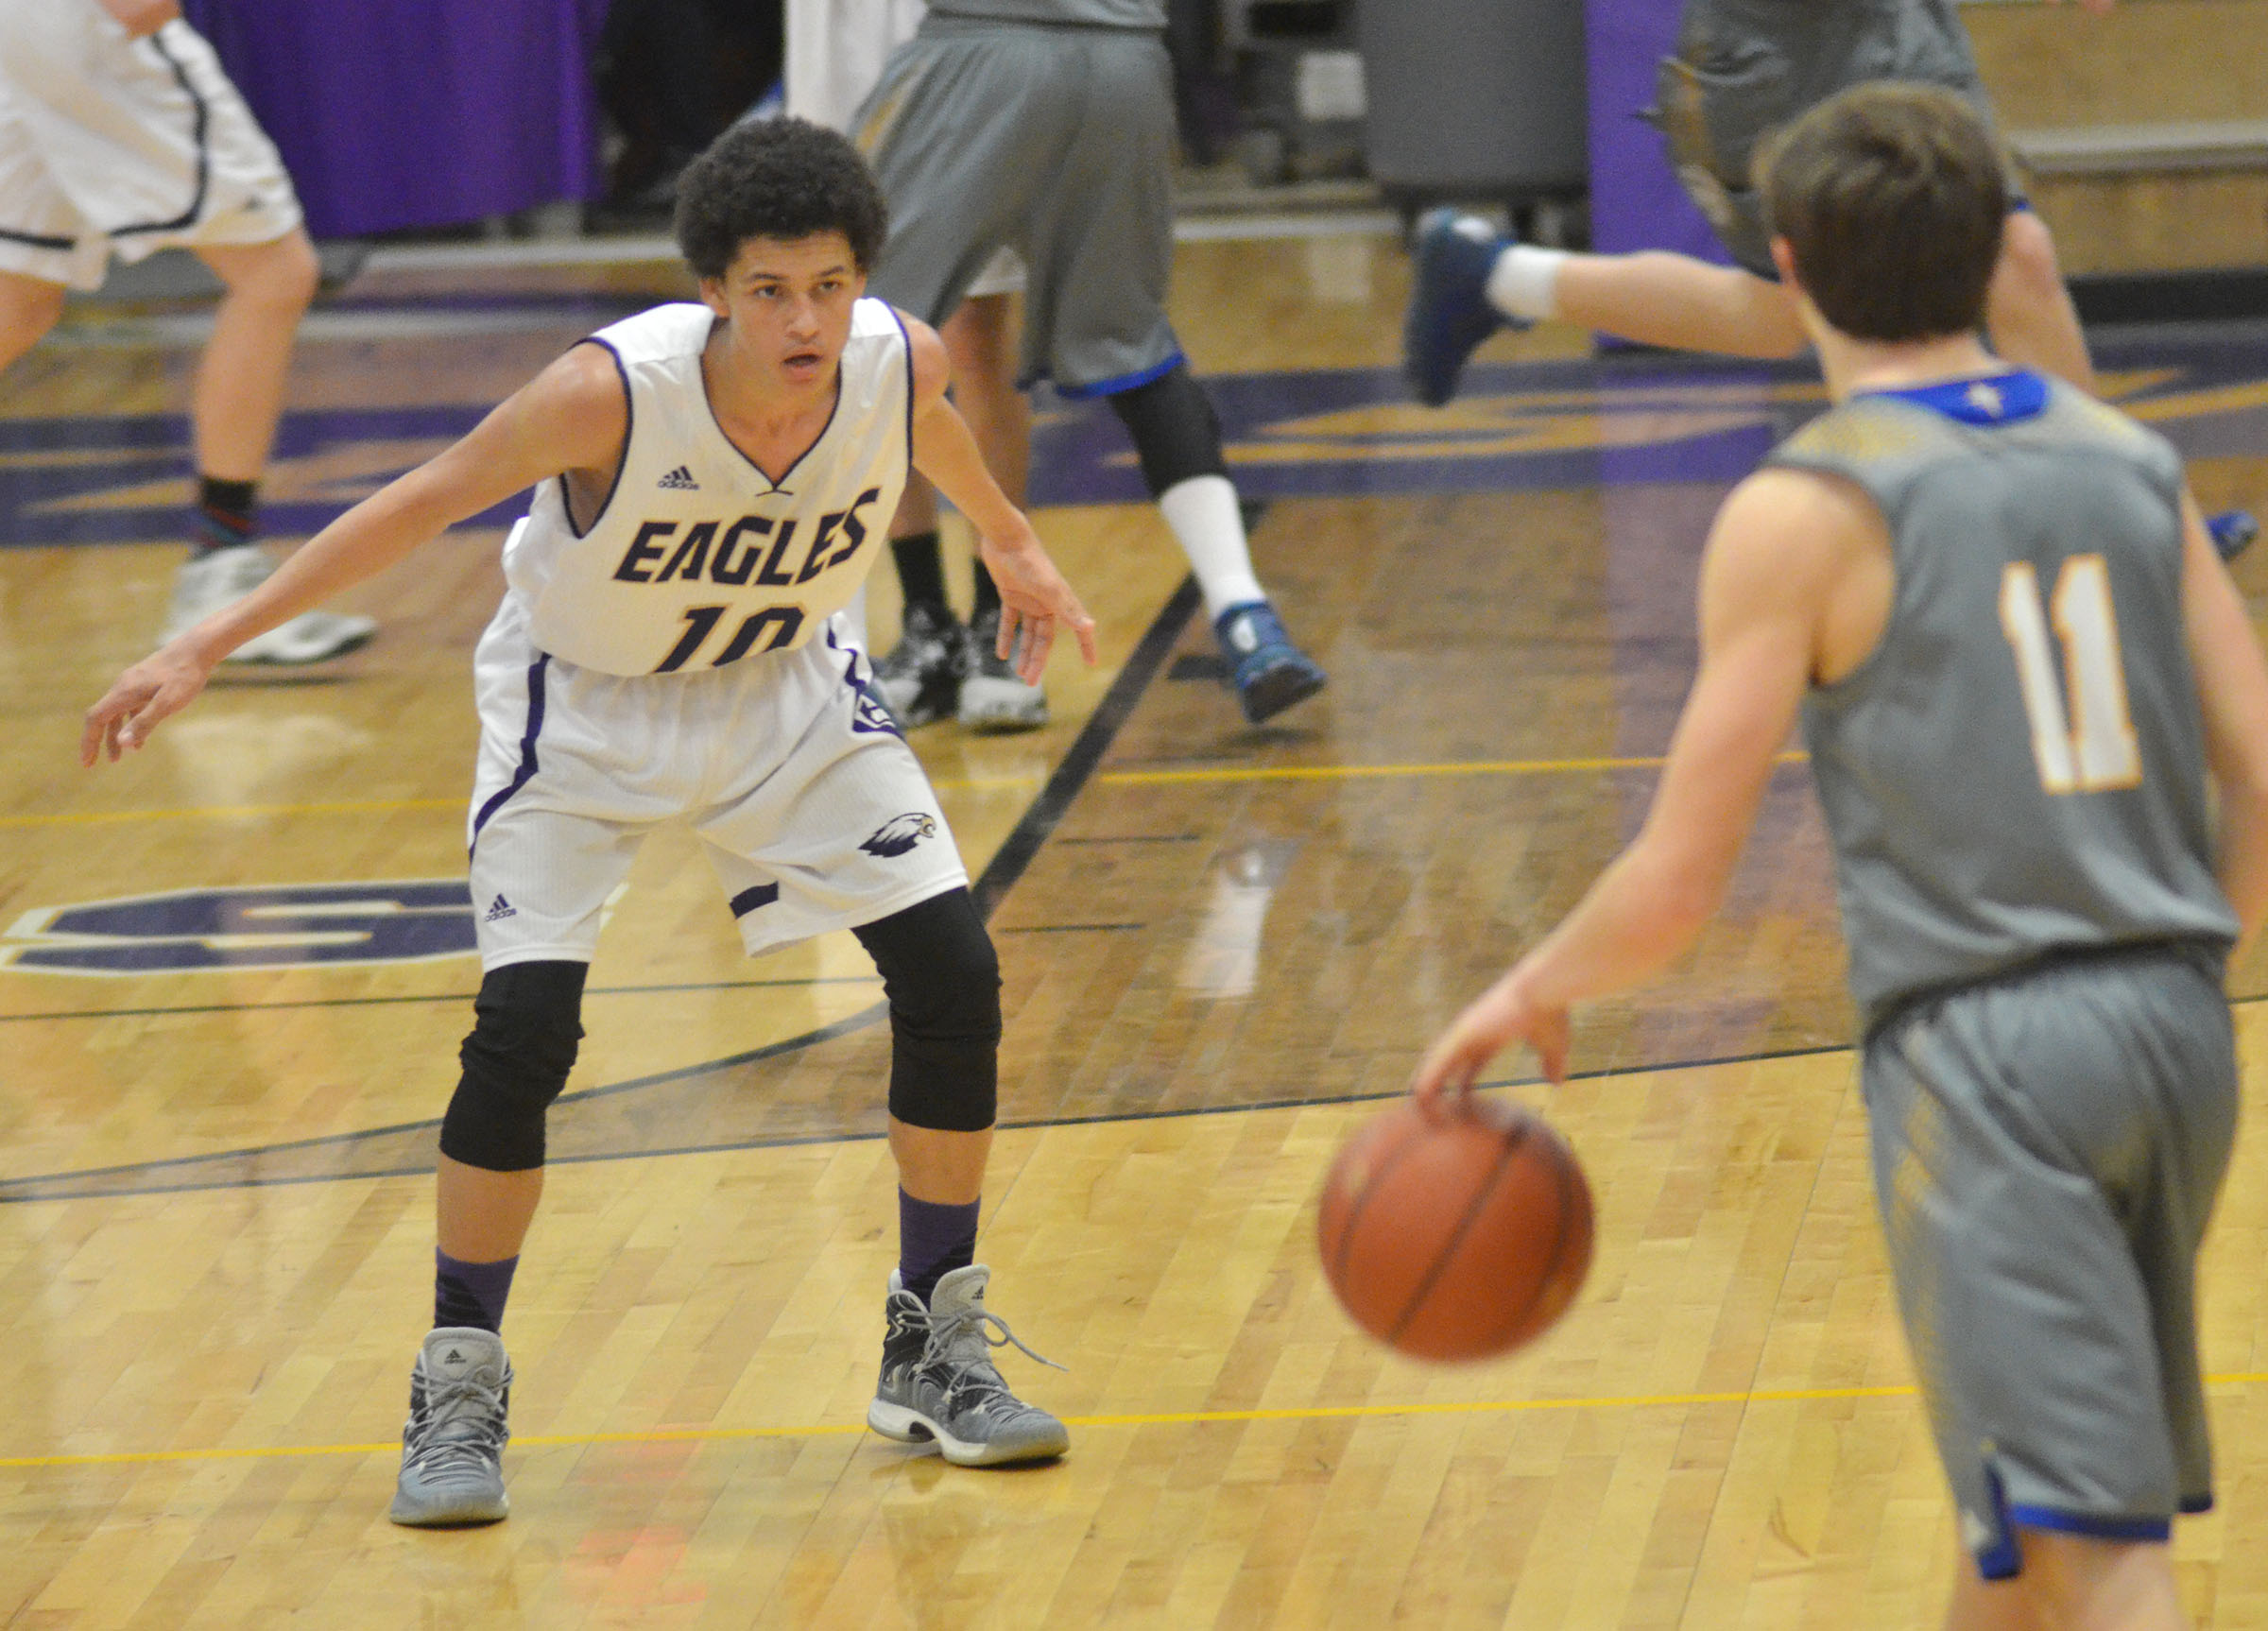 CHS freshman Mikael Vaught plays defense.